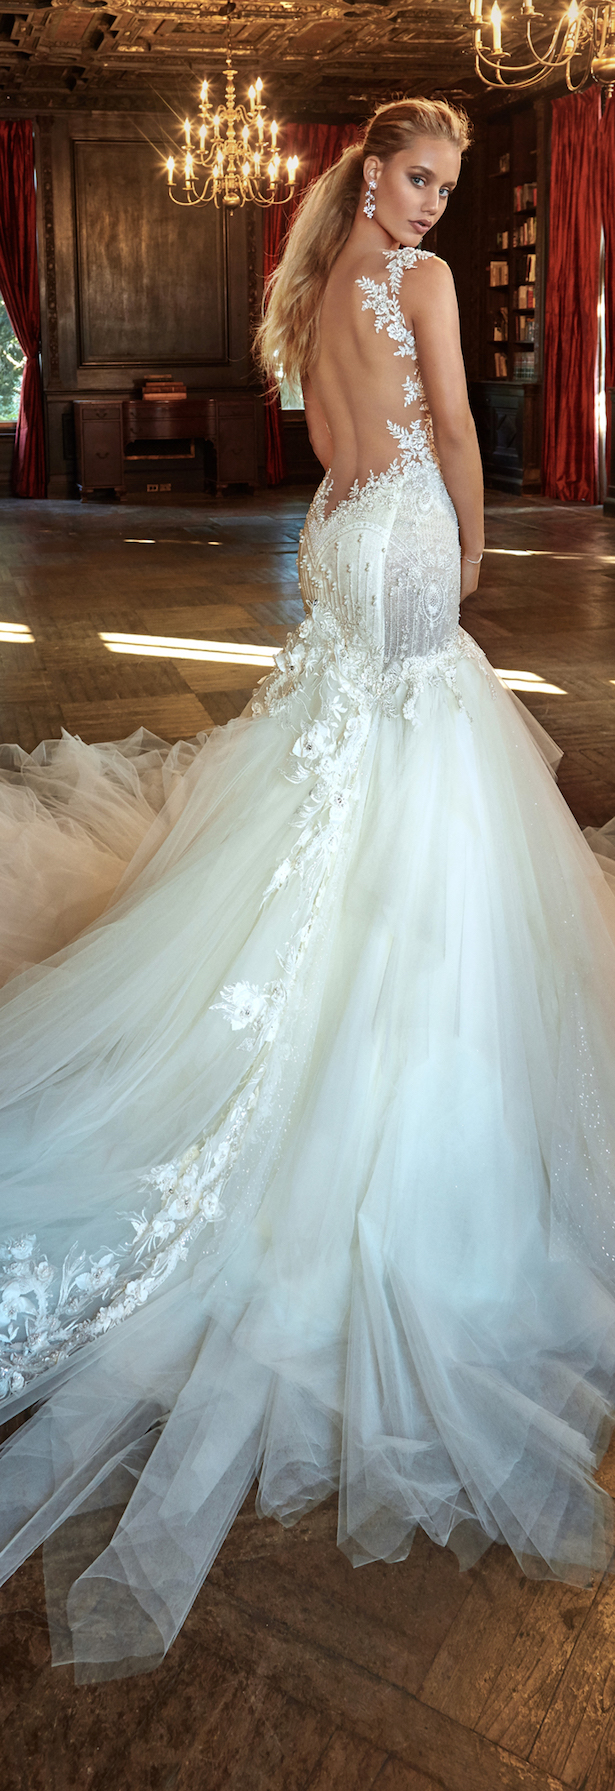 Fancy Bridal Gowns New Orleans Frieze - All Wedding Dresses ...